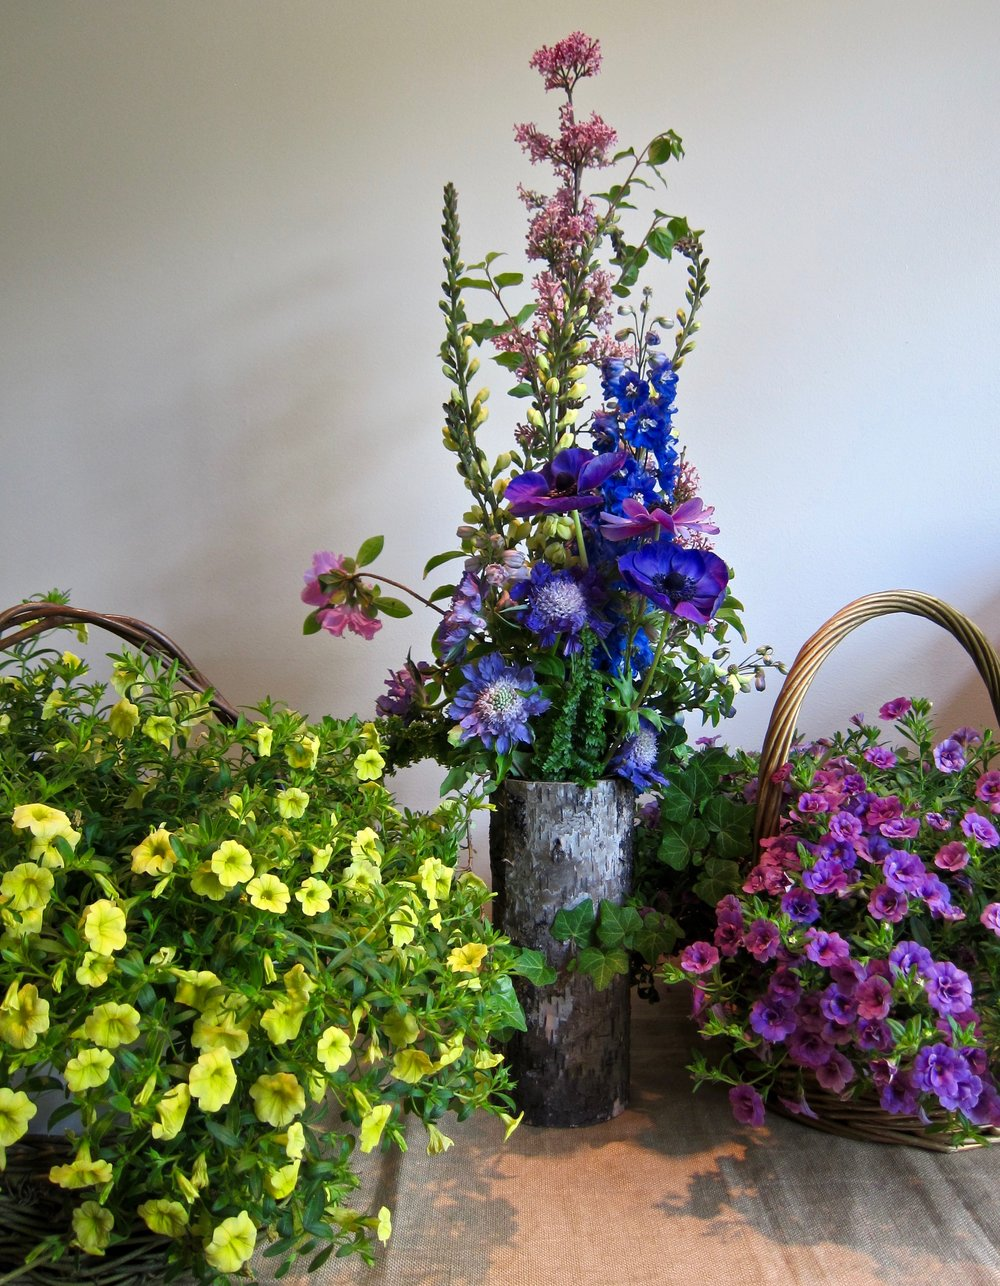 MIX LIVE PLANTS Fresh floral arrangements for a casual outdoor feel.